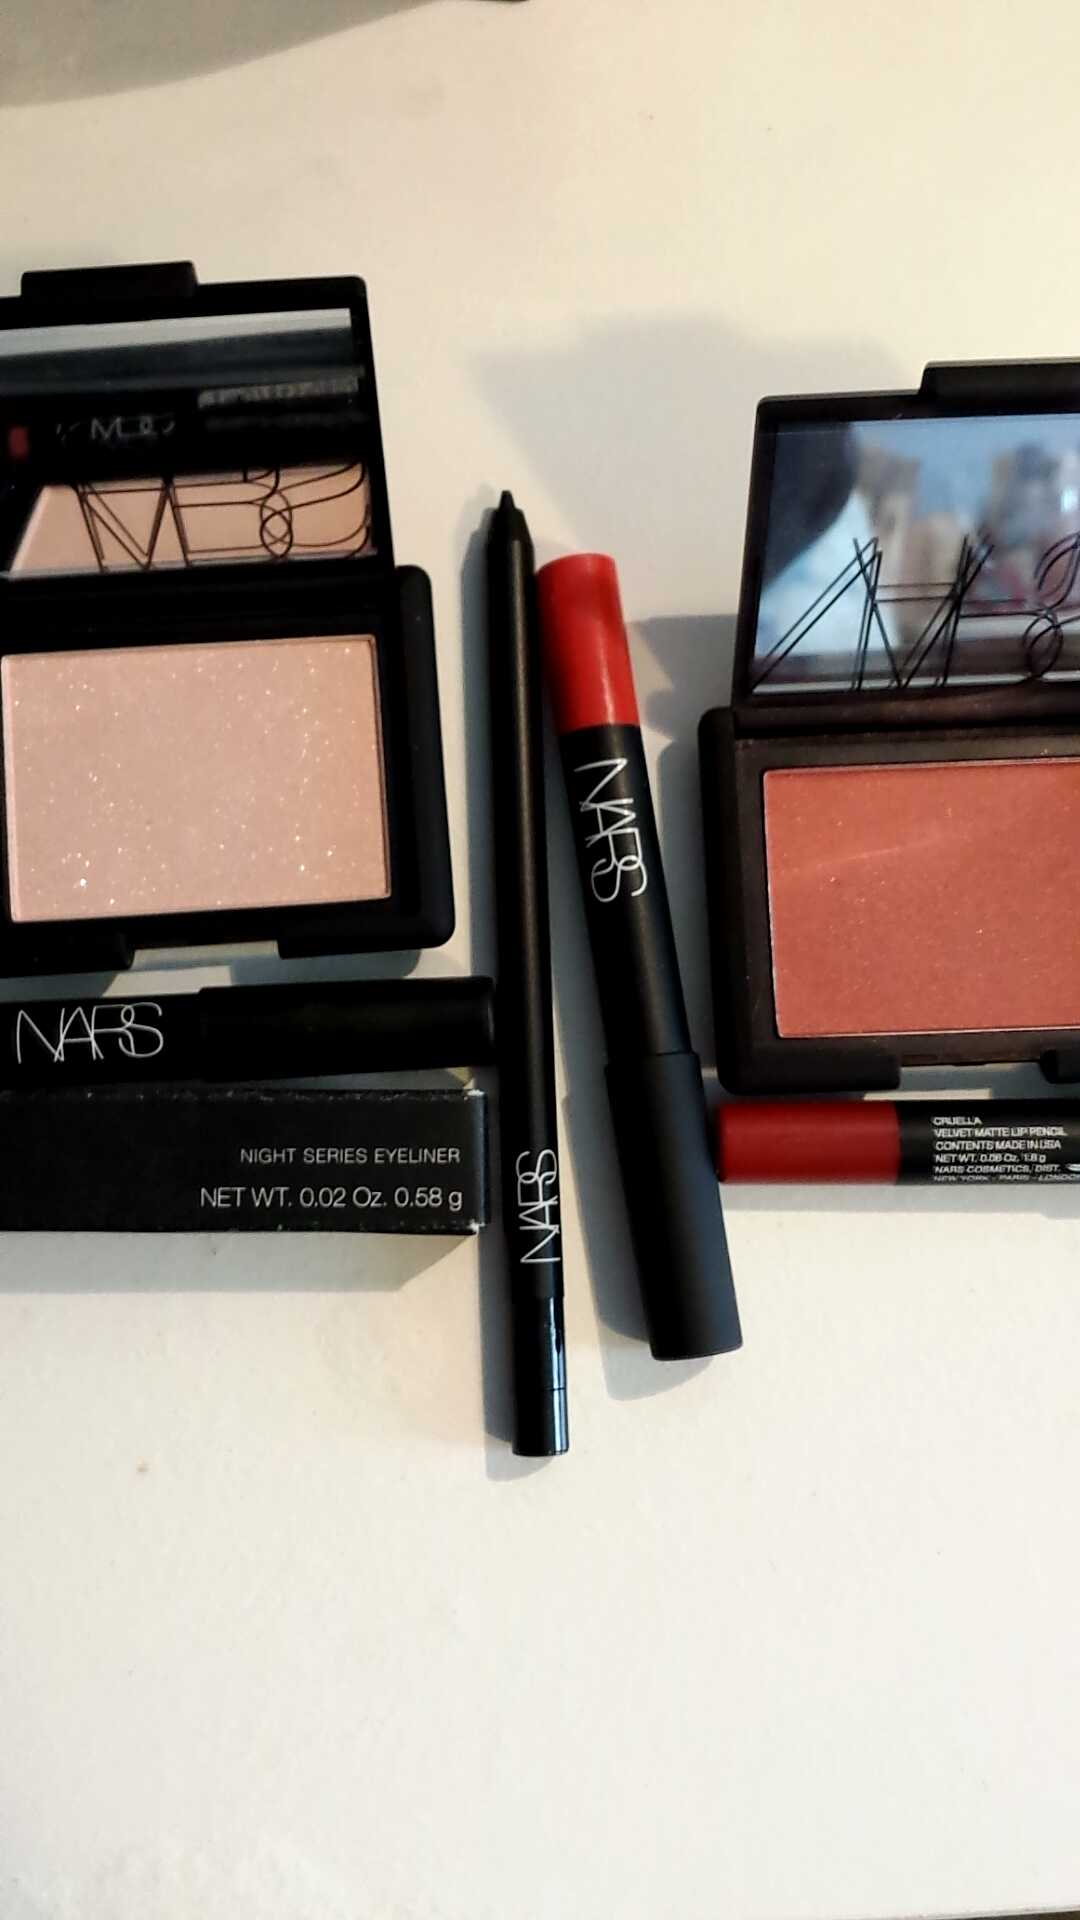 From L to R: NARS Blush in Reckless, NARS Night Series Eyeliner in Night Flight, NARS Matte Lip Pencil in Red Square, NARS Blush in Taos